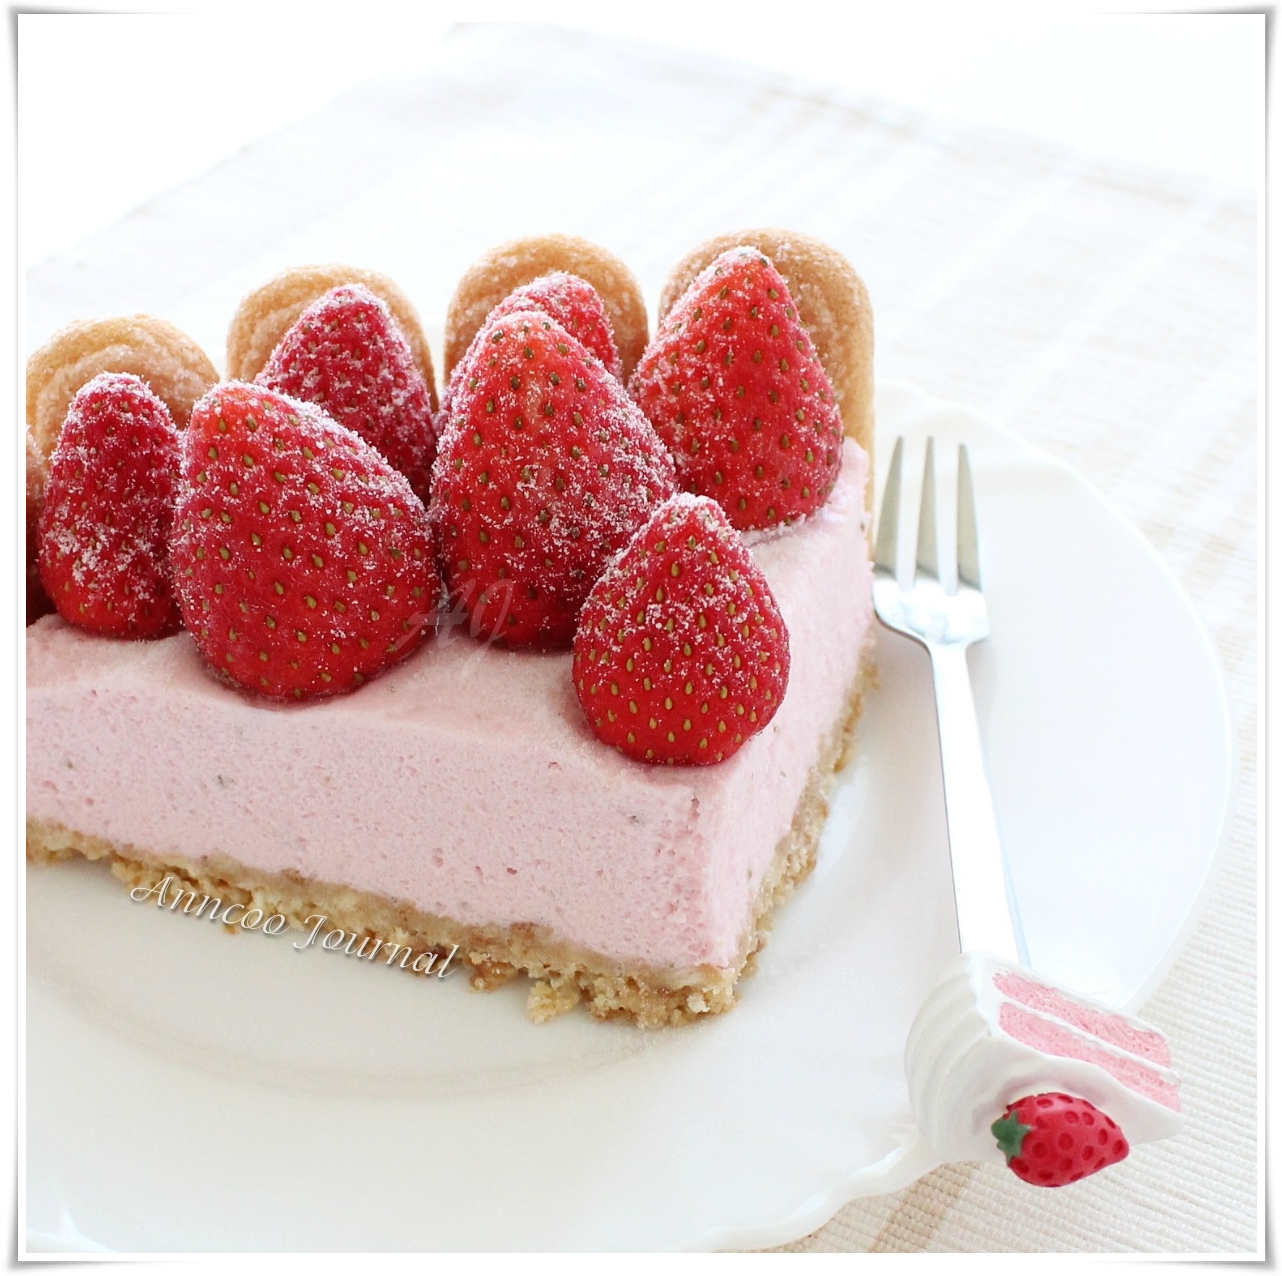 Charlotte Aux Fraises (Strawberry Charlotte) - Anncoo Journal